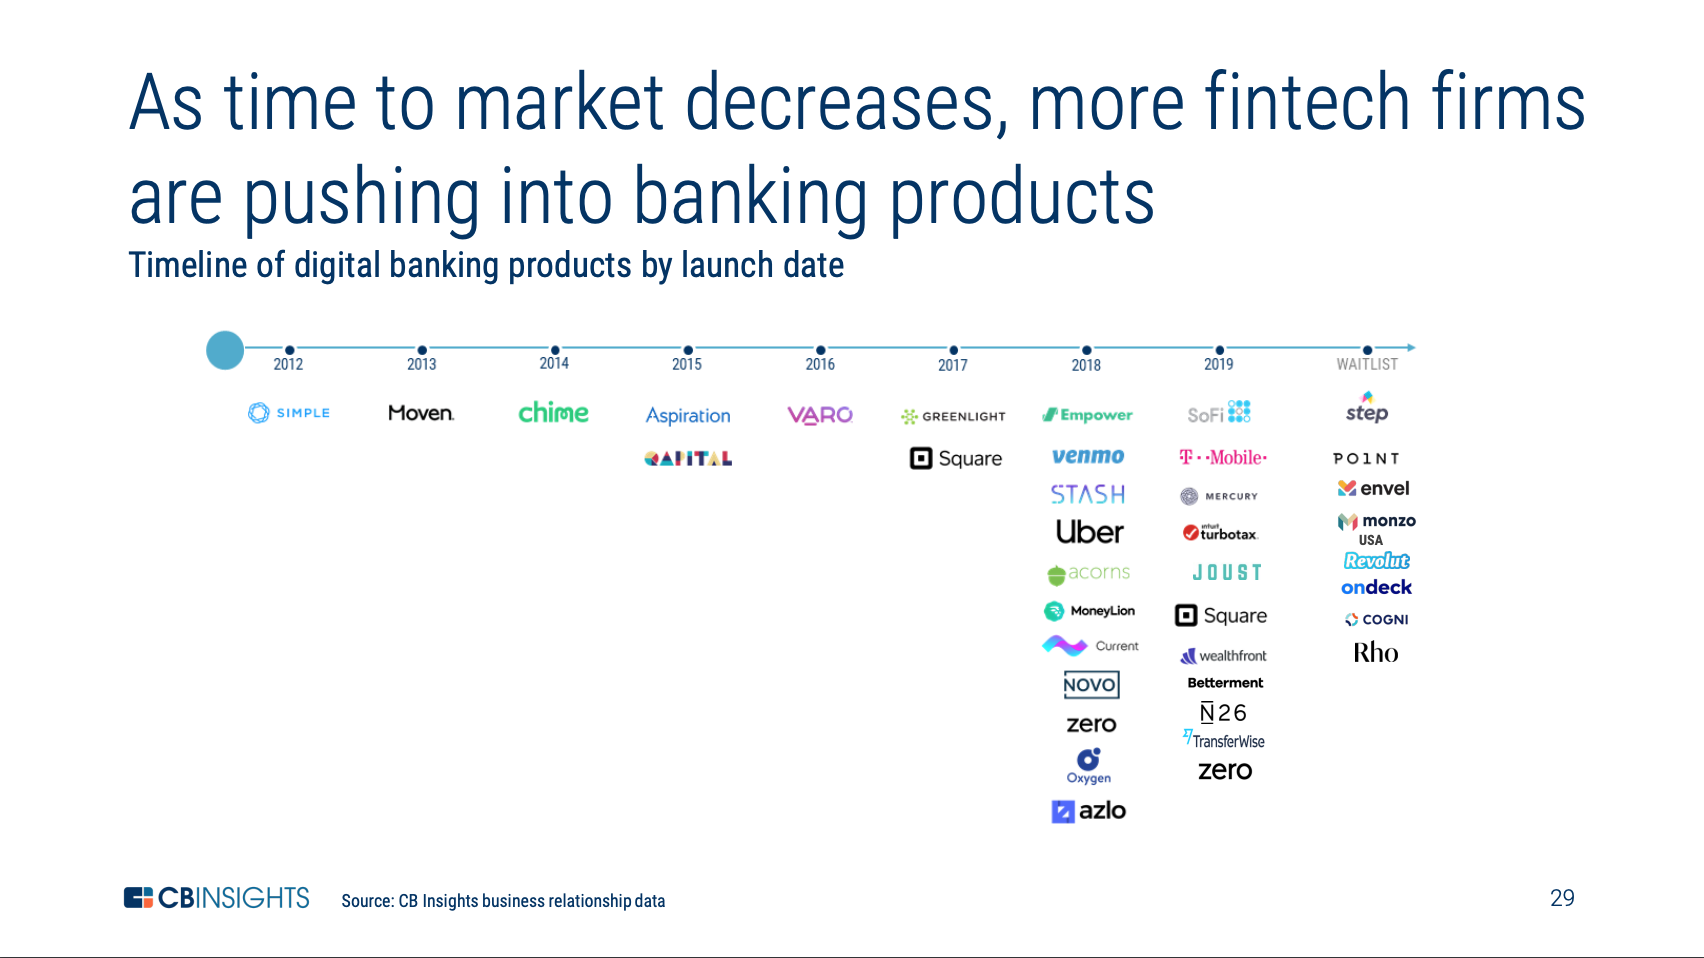 Fintechs-digital-banking-products